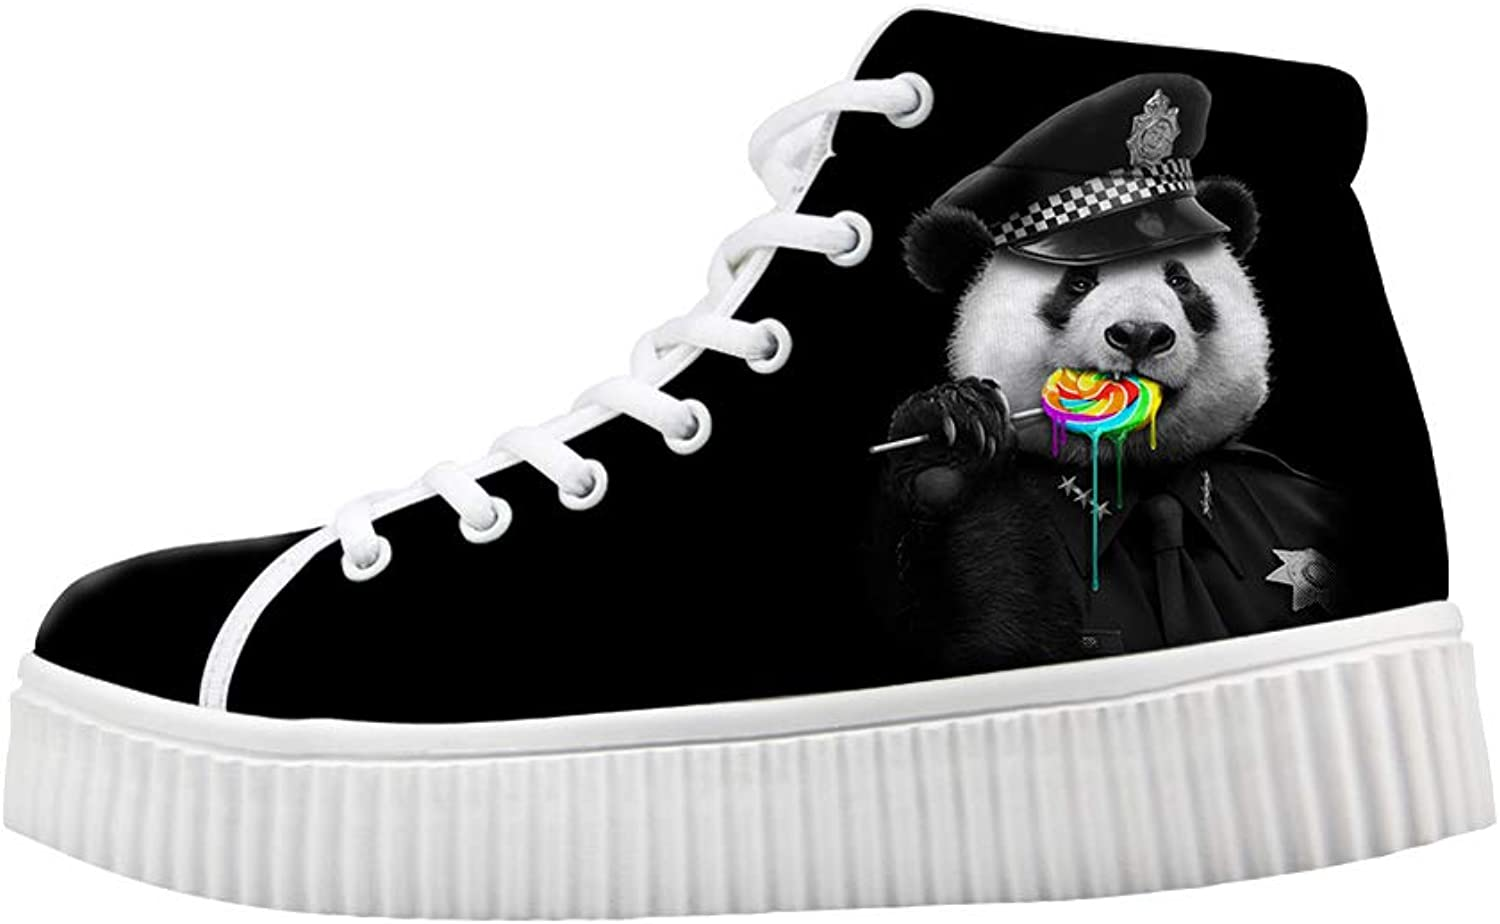 Owaheson Platform Lace up Sneaker Casual Chunky Walking shoes Women Panda Bear Rainbow Lollypop Police Cop